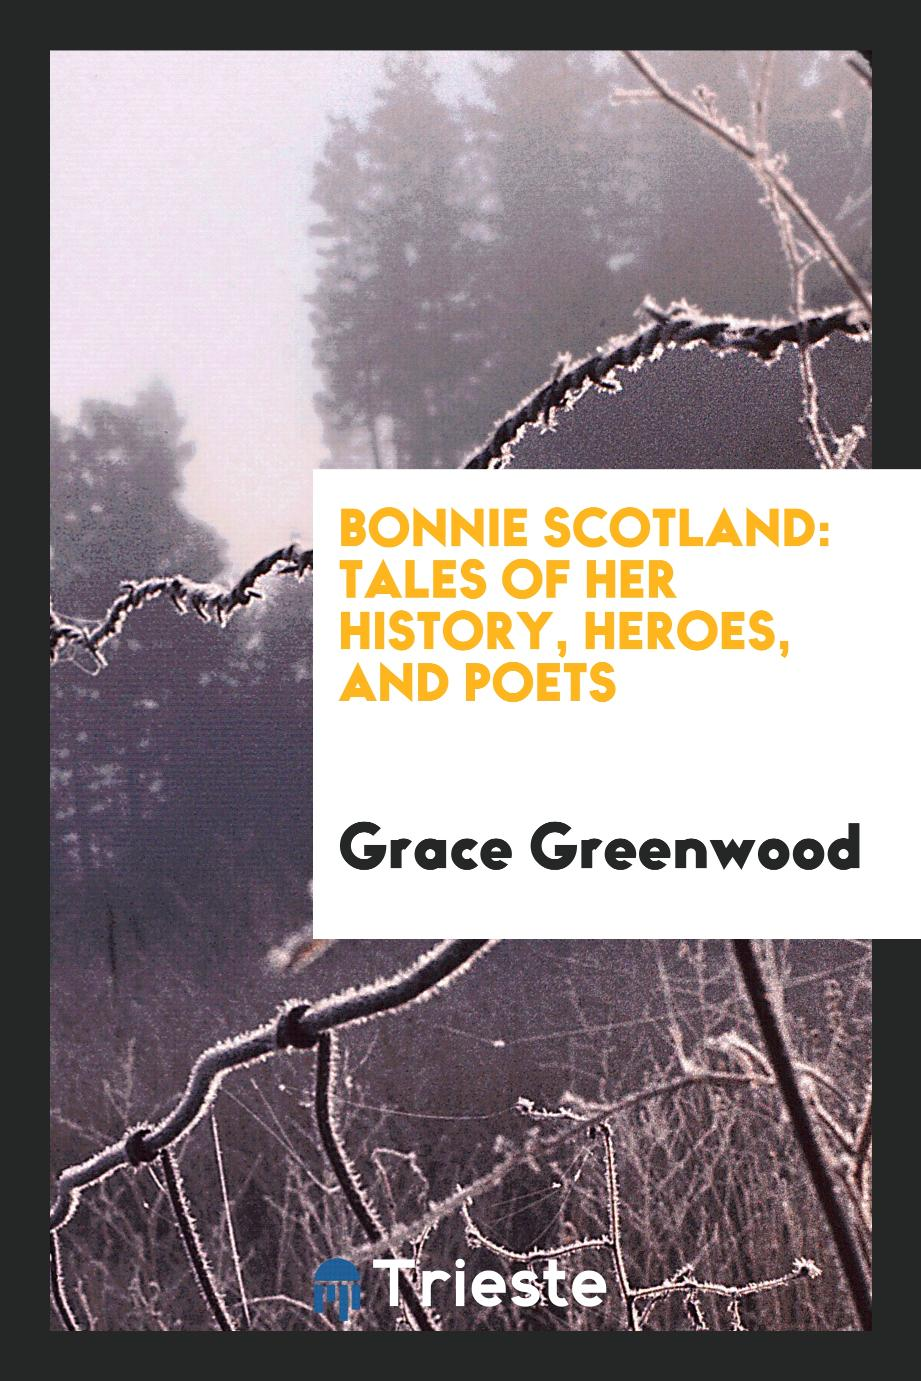 Bonnie Scotland: Tales of Her History, Heroes, and Poets